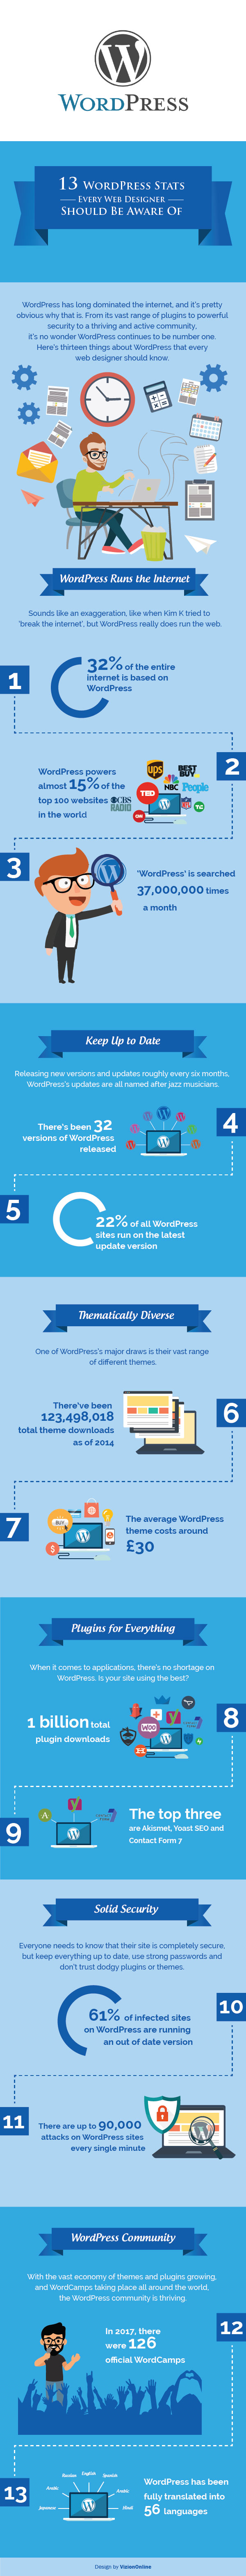 13 WordPress Stats Every Web Designer Should be Aware Of